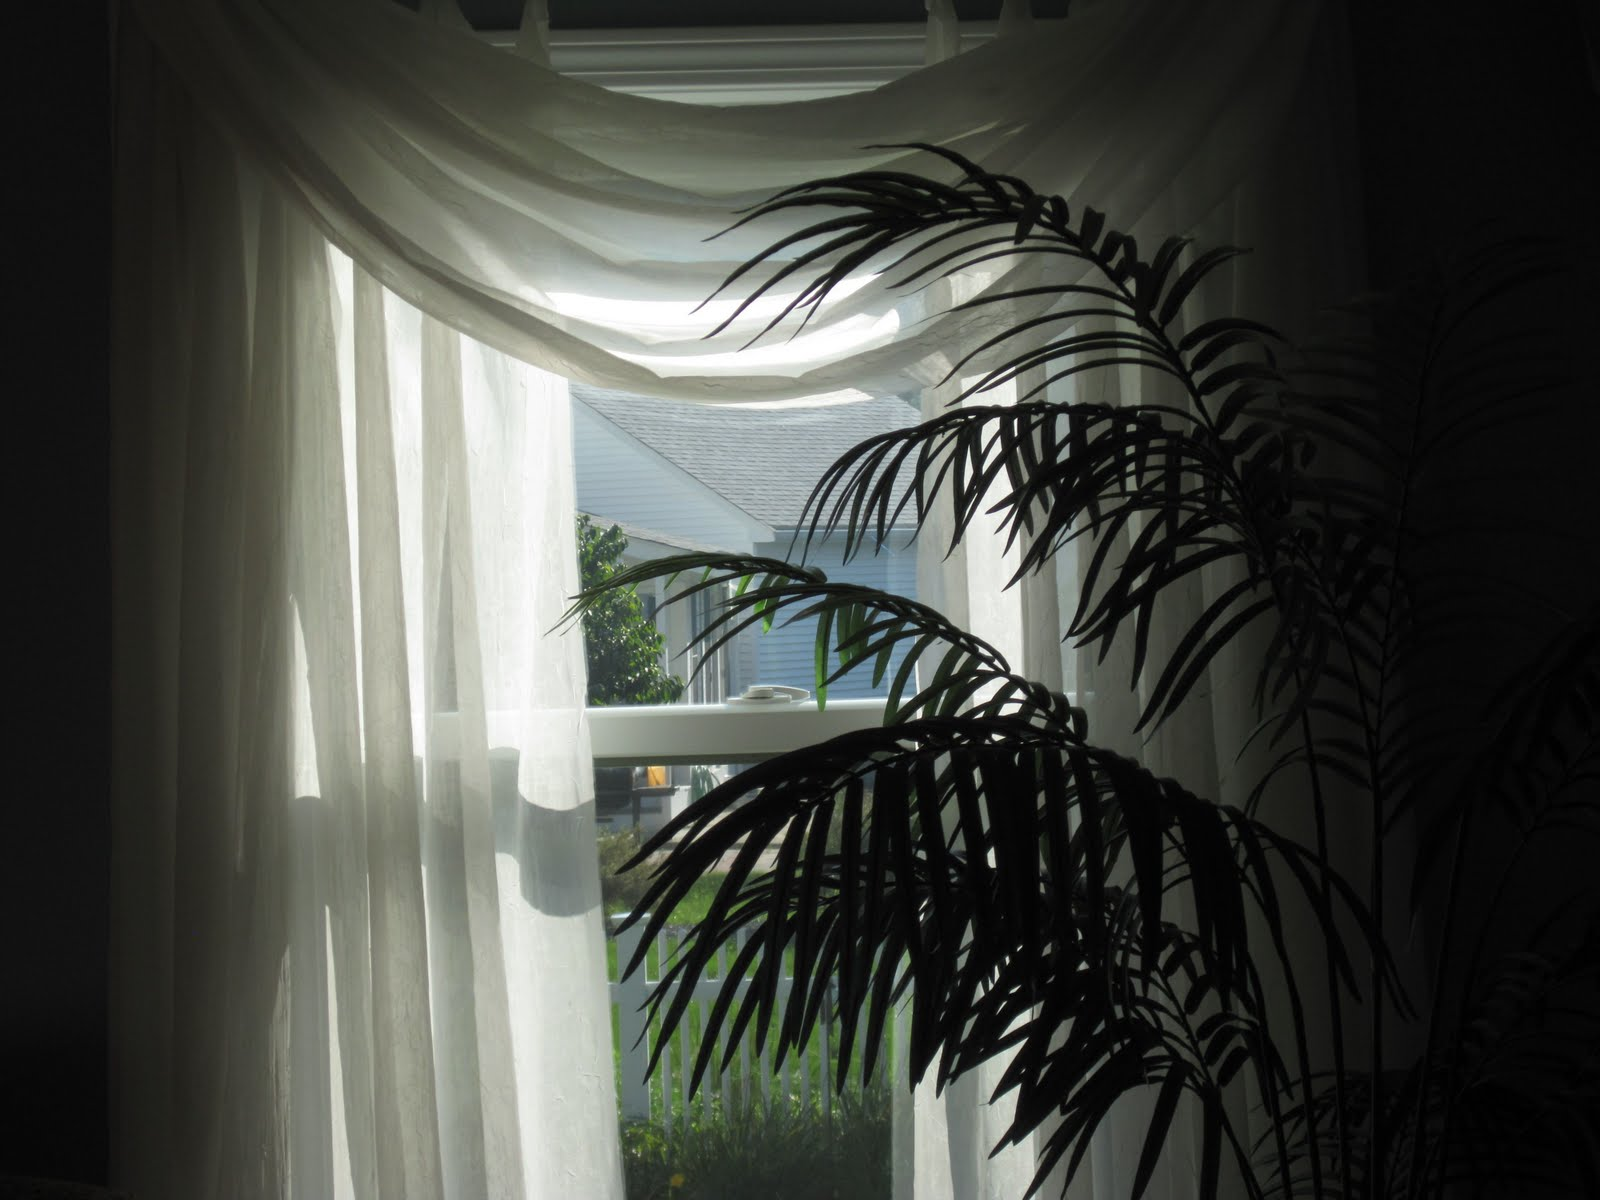 Open window with curtains blowing - Windows Of The Mansion Are Open And The Billowy Curtains Are Blowing